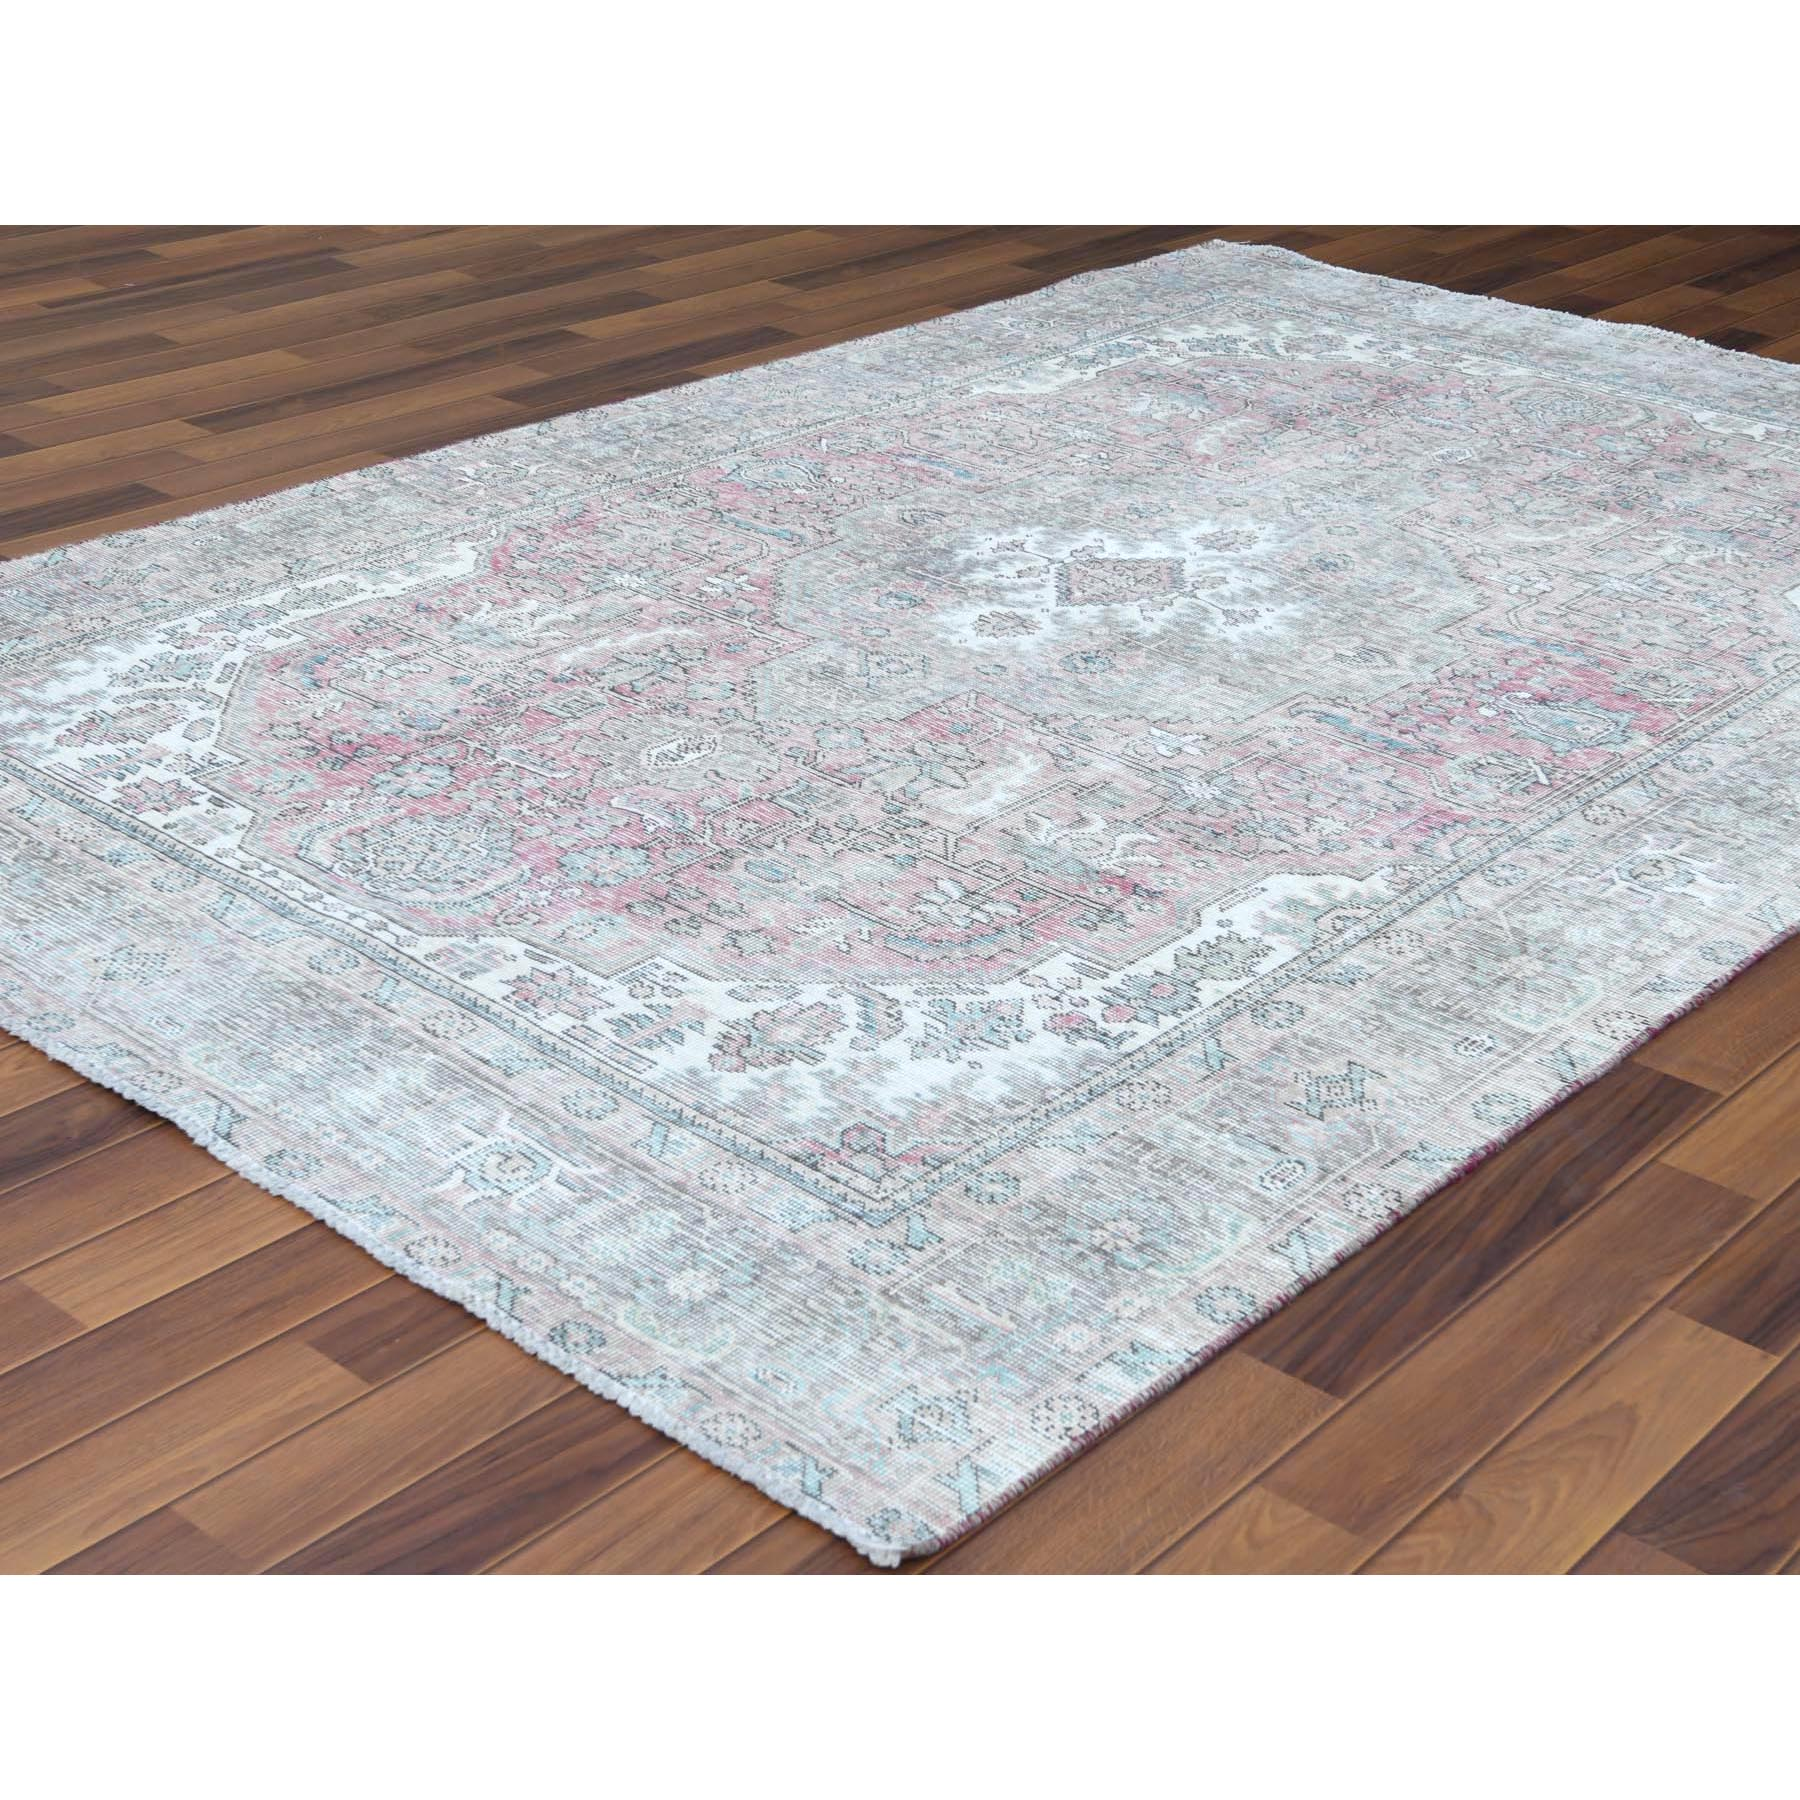 """6'2""""x9'4"""" Red Clean Organic Wool Bohemian Sheared Low Semi Antique Persian Tabriz Medallion Design Hand Knotted Oriental Rug"""